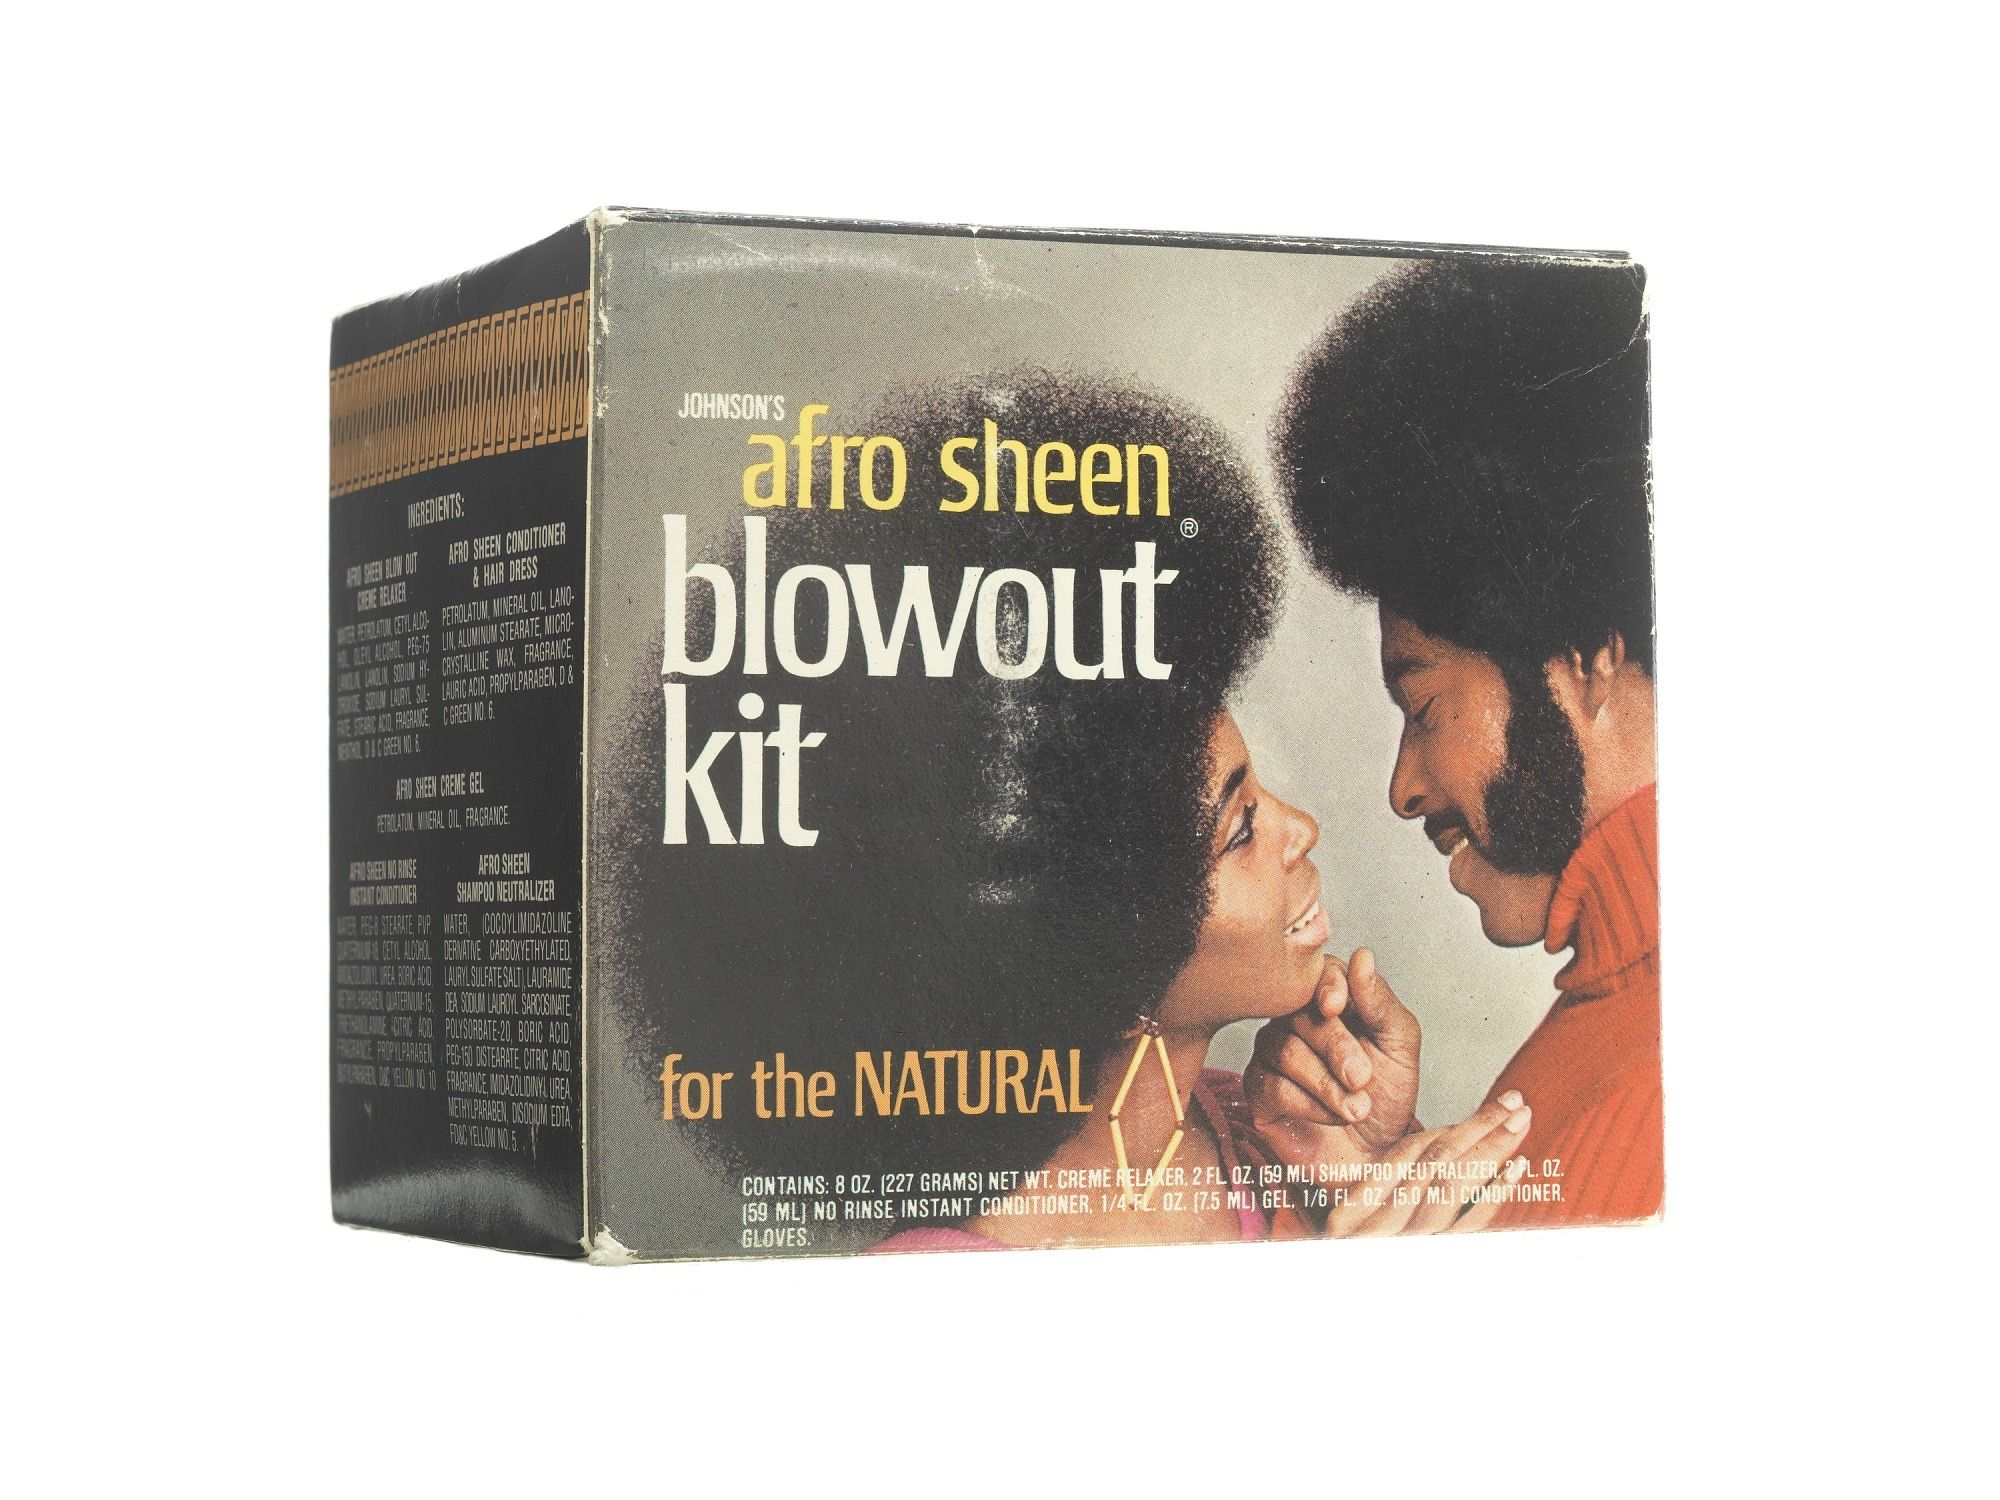 Afro sheen blowout kit in 2020 johnson johnson and